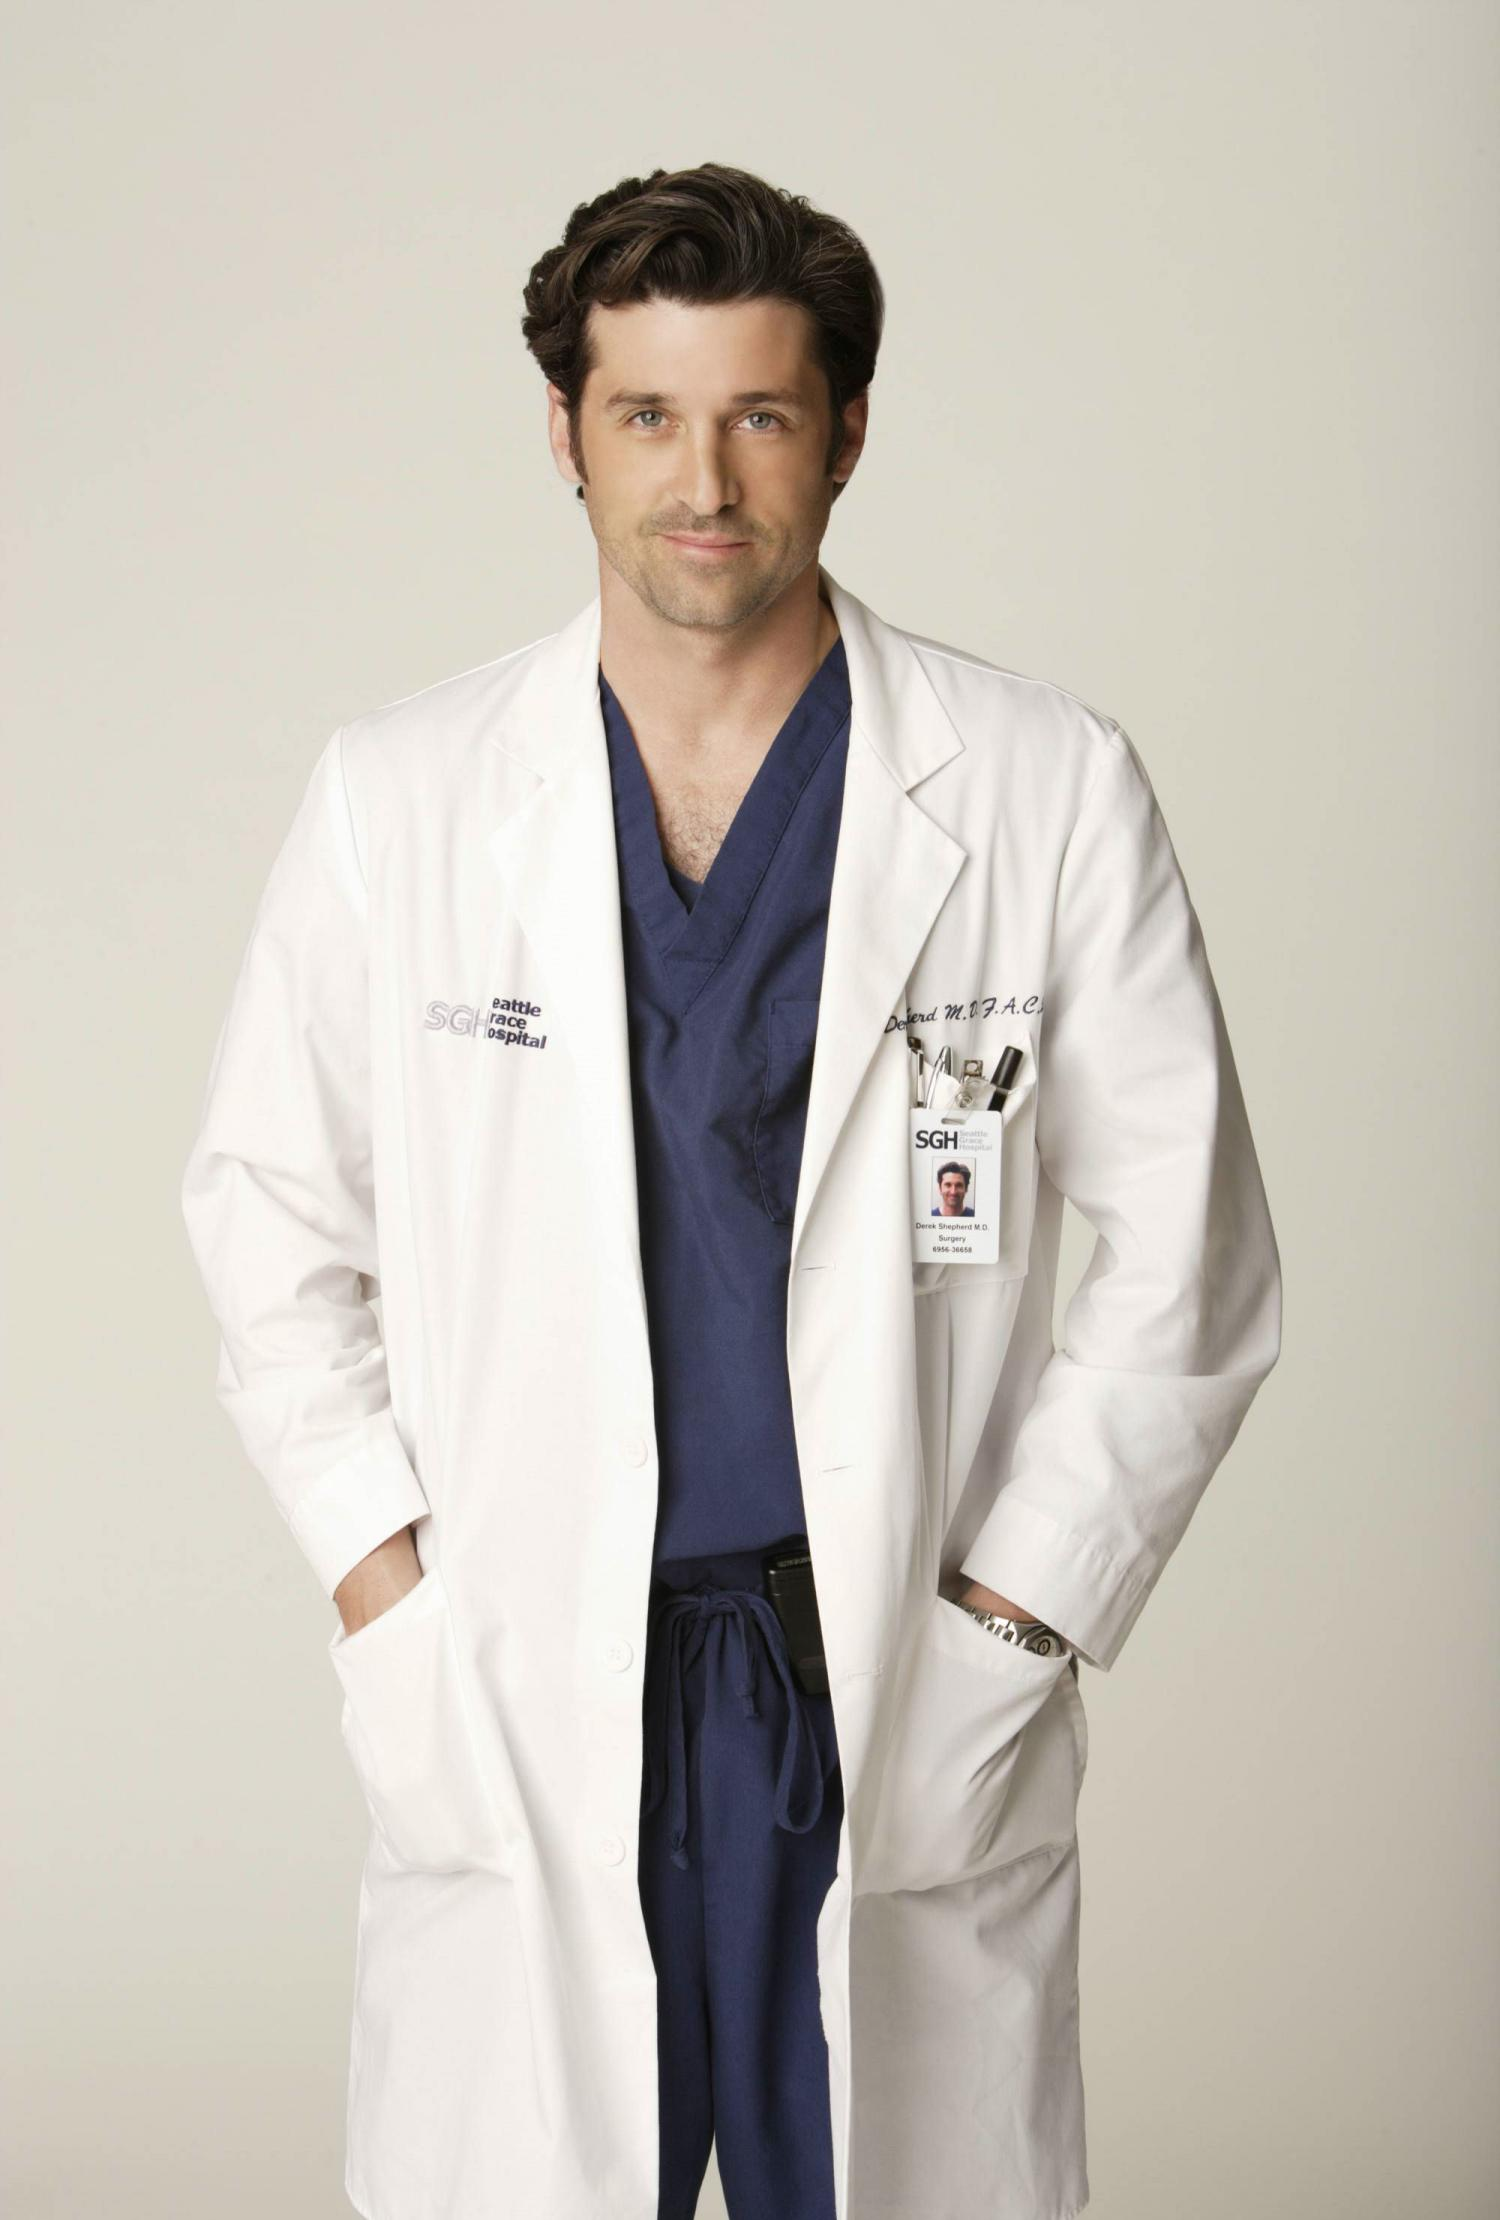 Grey\'s Anatomy Seasons 1 and 2 Promo Pictures | DVDbash